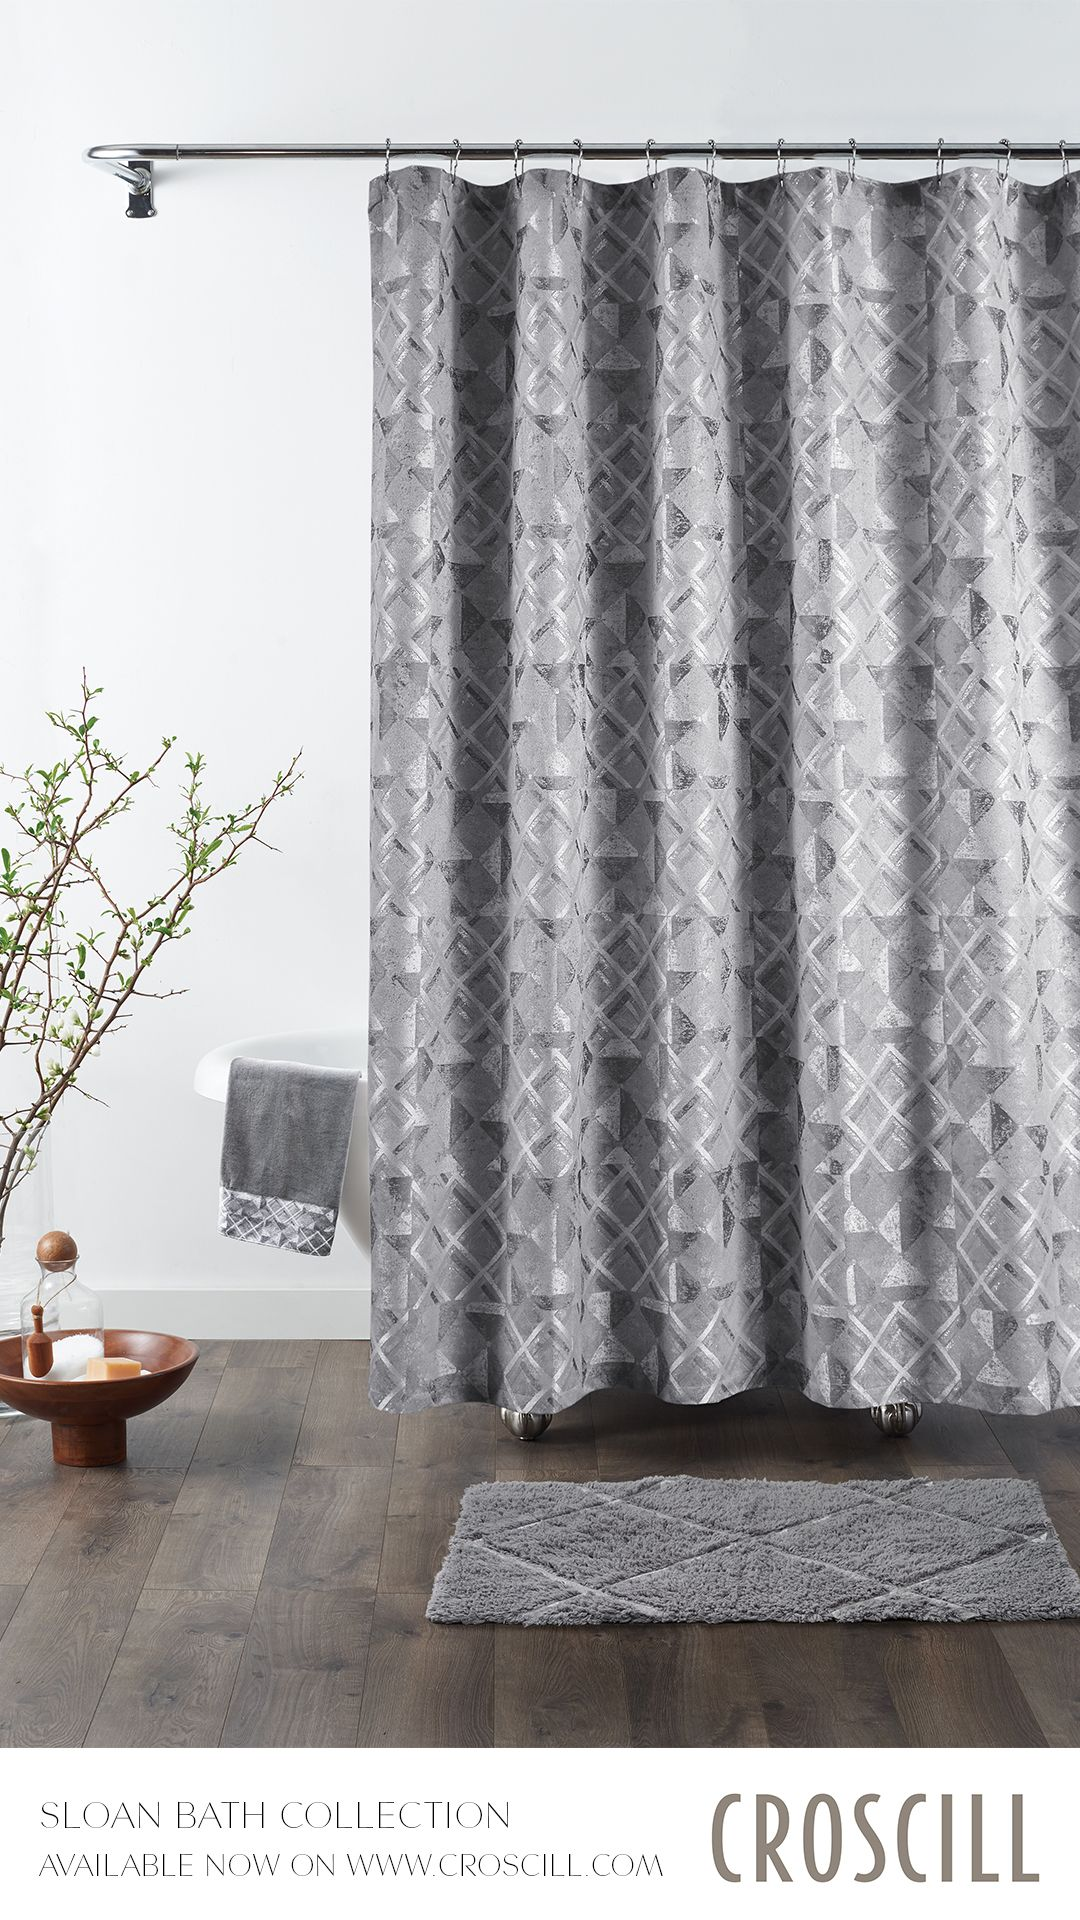 Sloan Shower Curtain 72x72 Sophisticated Bathroom Curtains